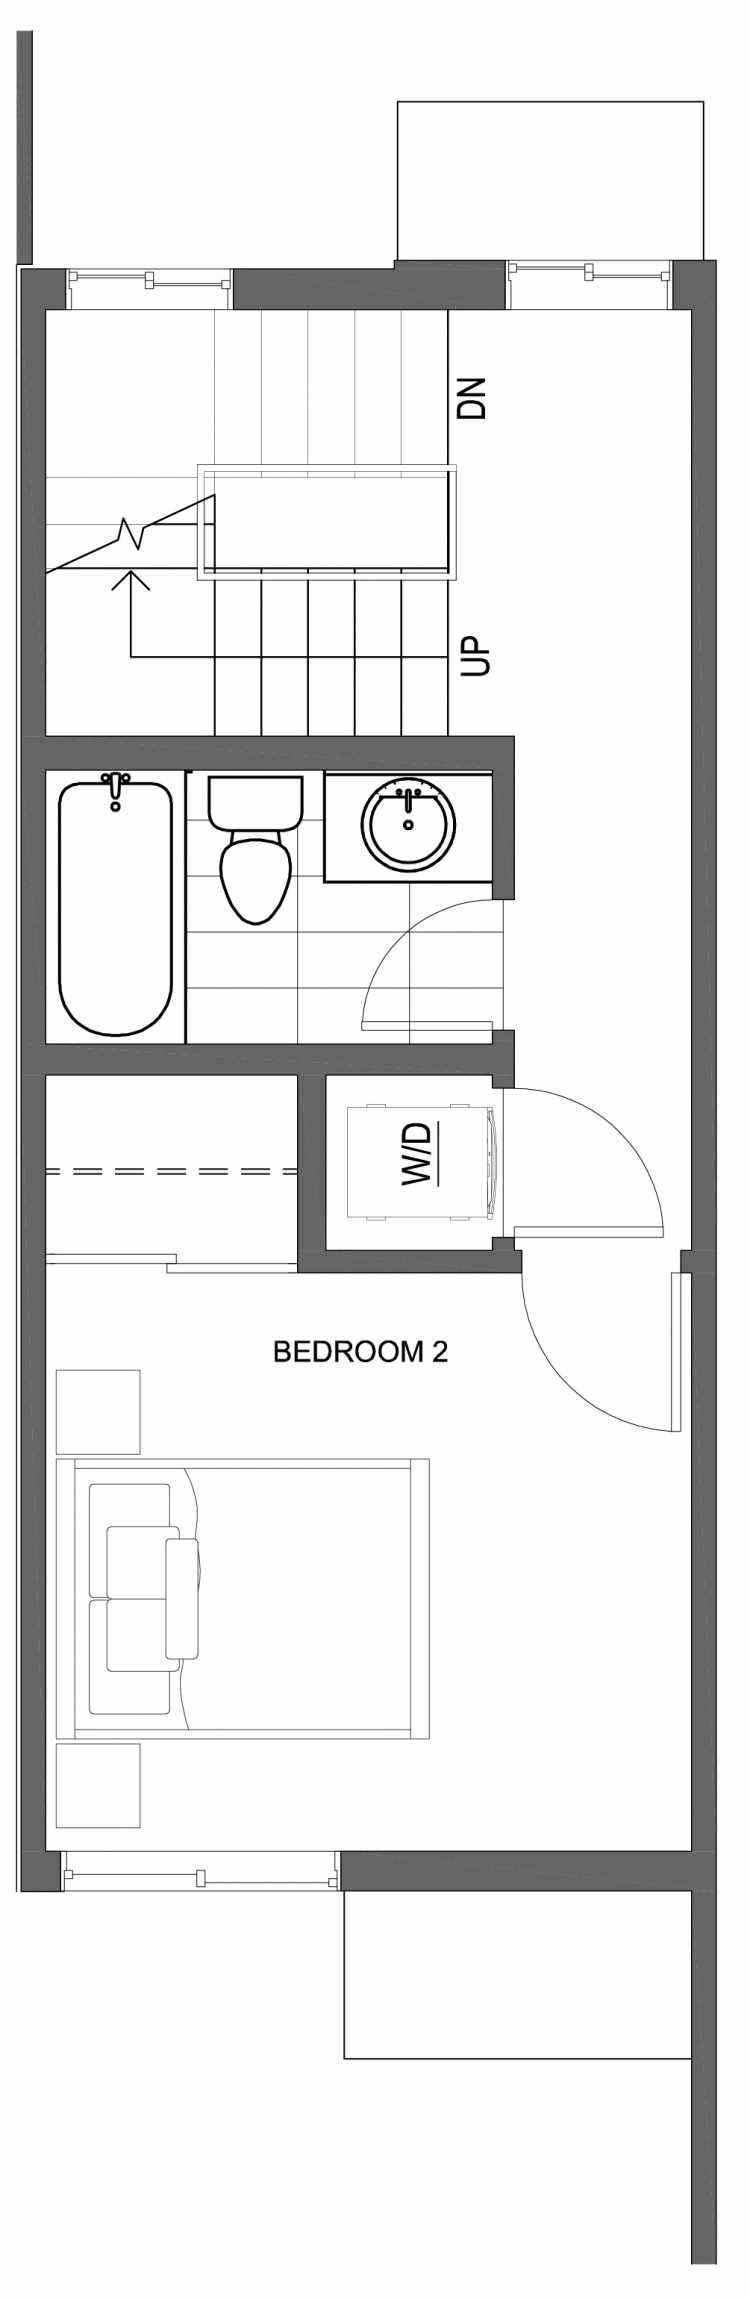 Second Floor Plan of 10421 Alderbrook Pl NW, One of the Zinnia Townhomes in the Greenwood Neighborhood of Seattle